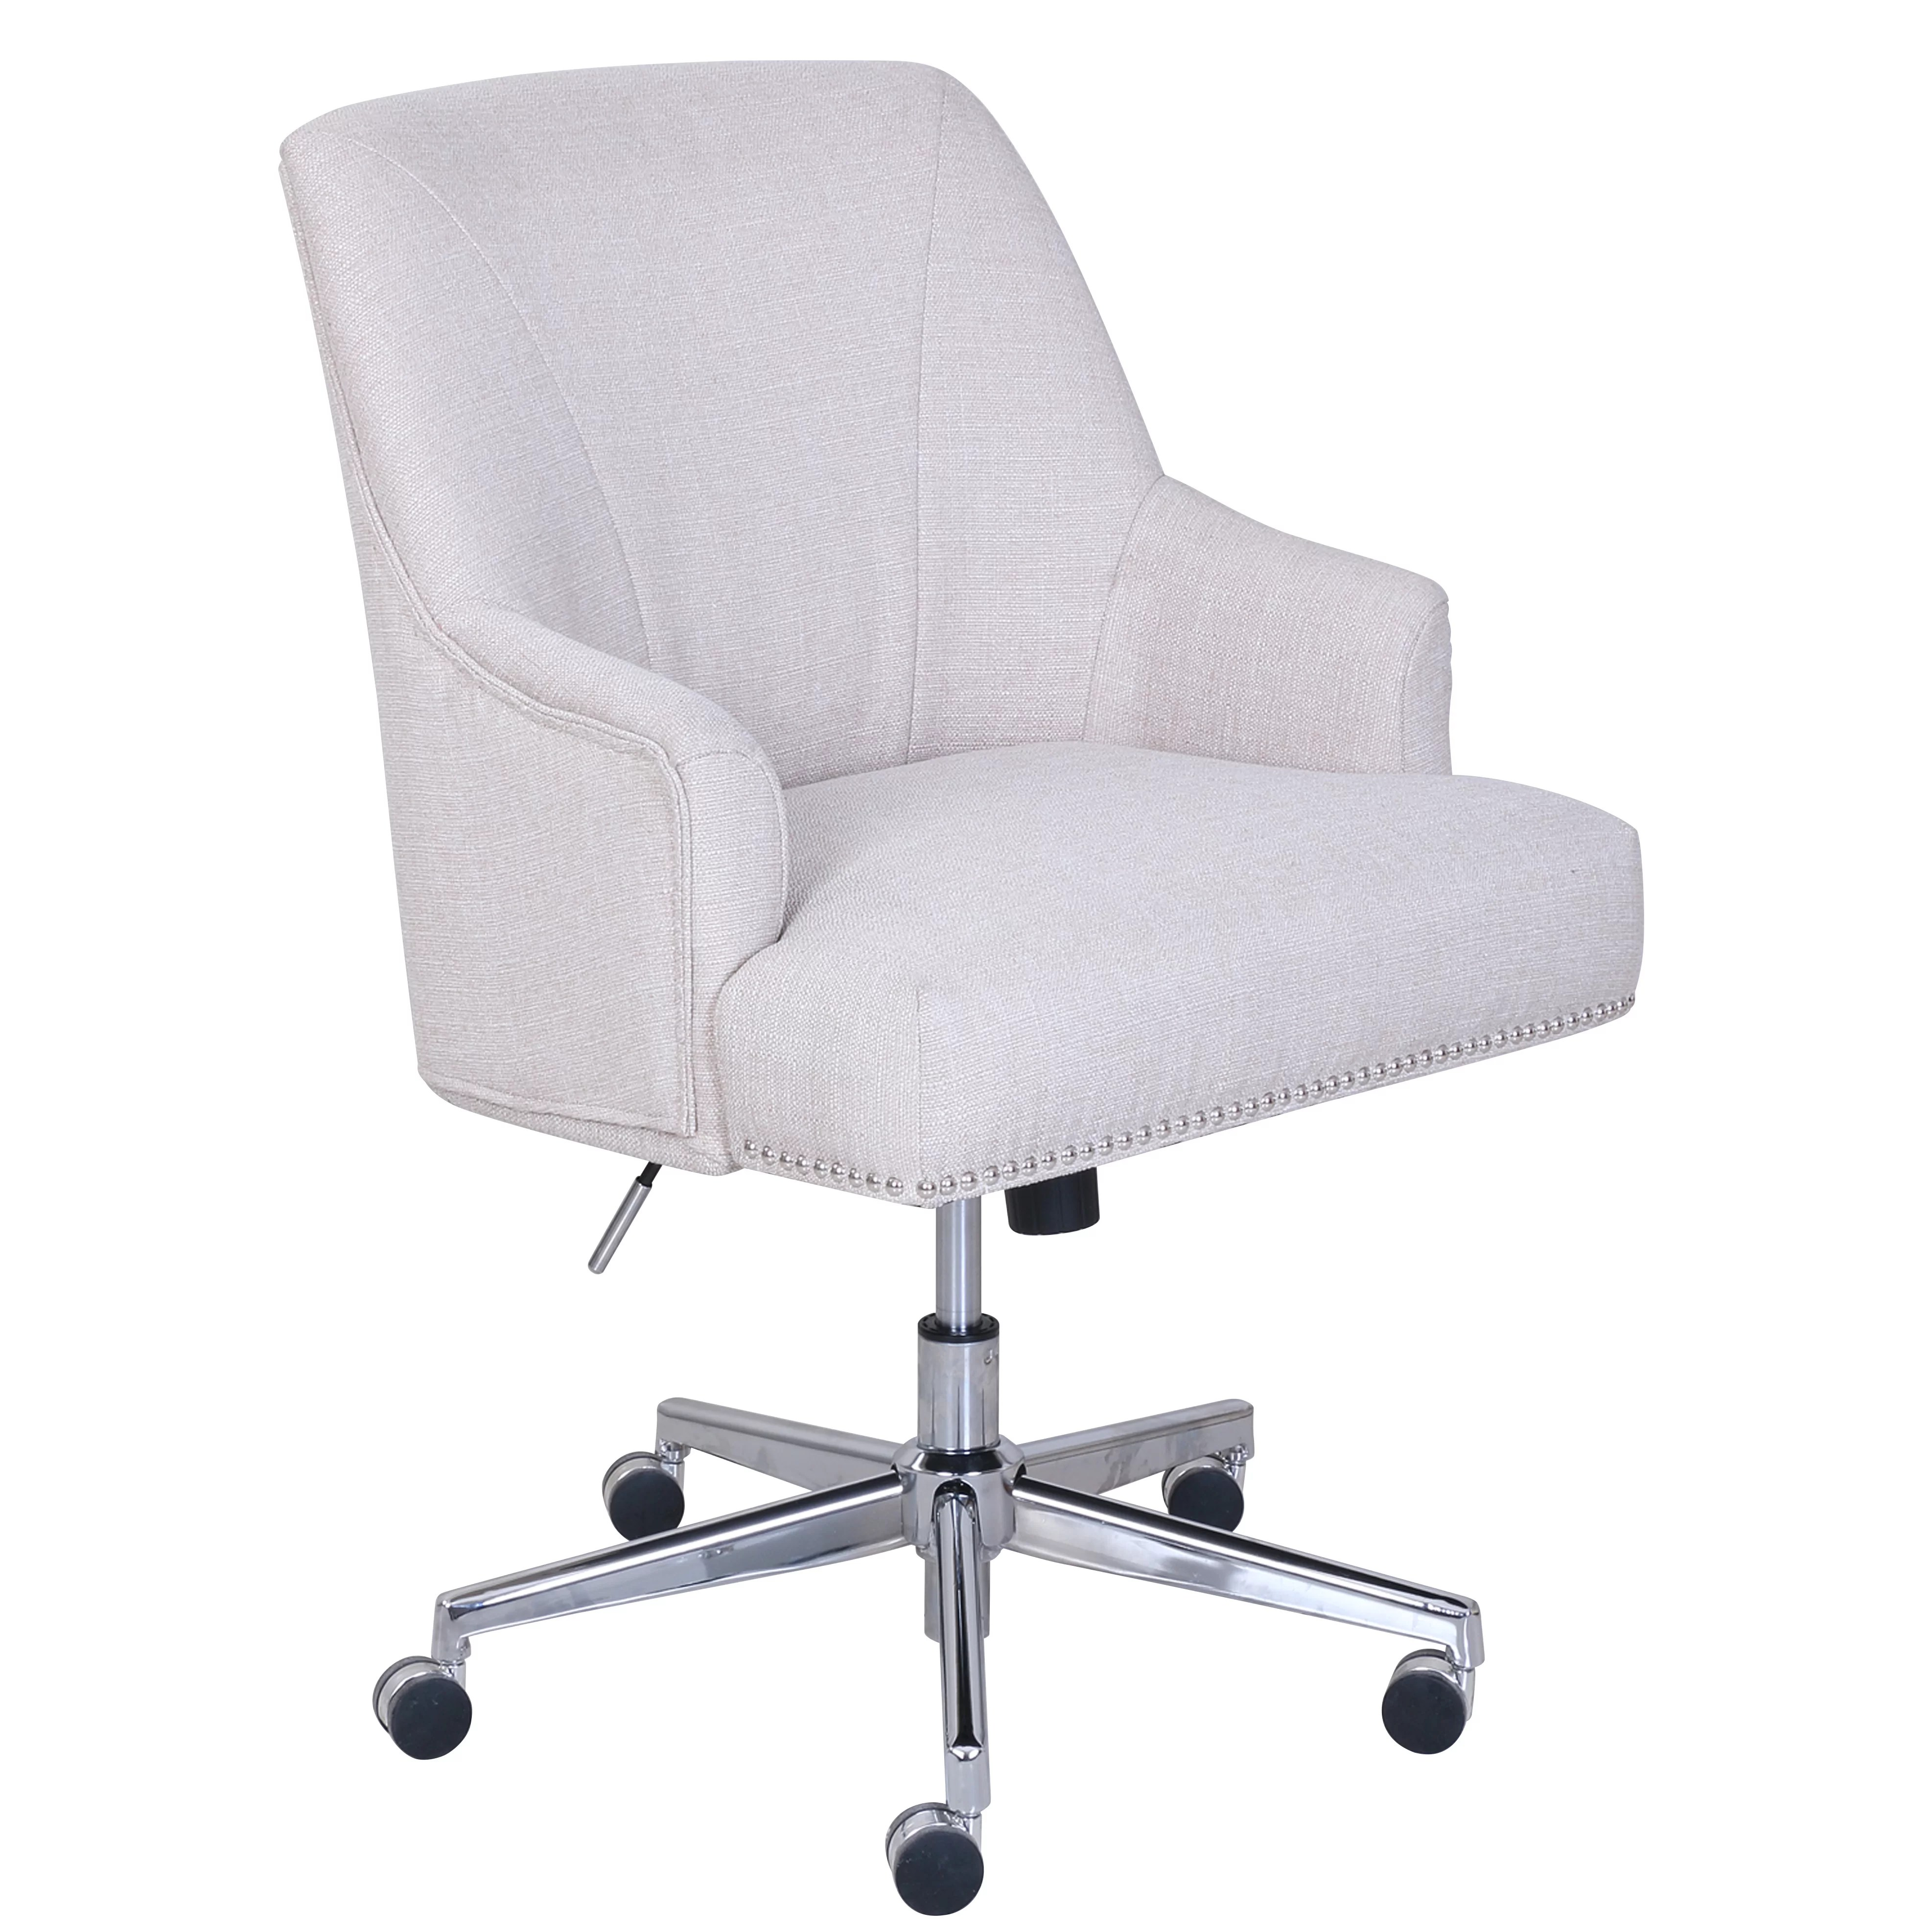 Desk Chairs Serta At Home Serta Leighton Desk Chair And Reviews Wayfair